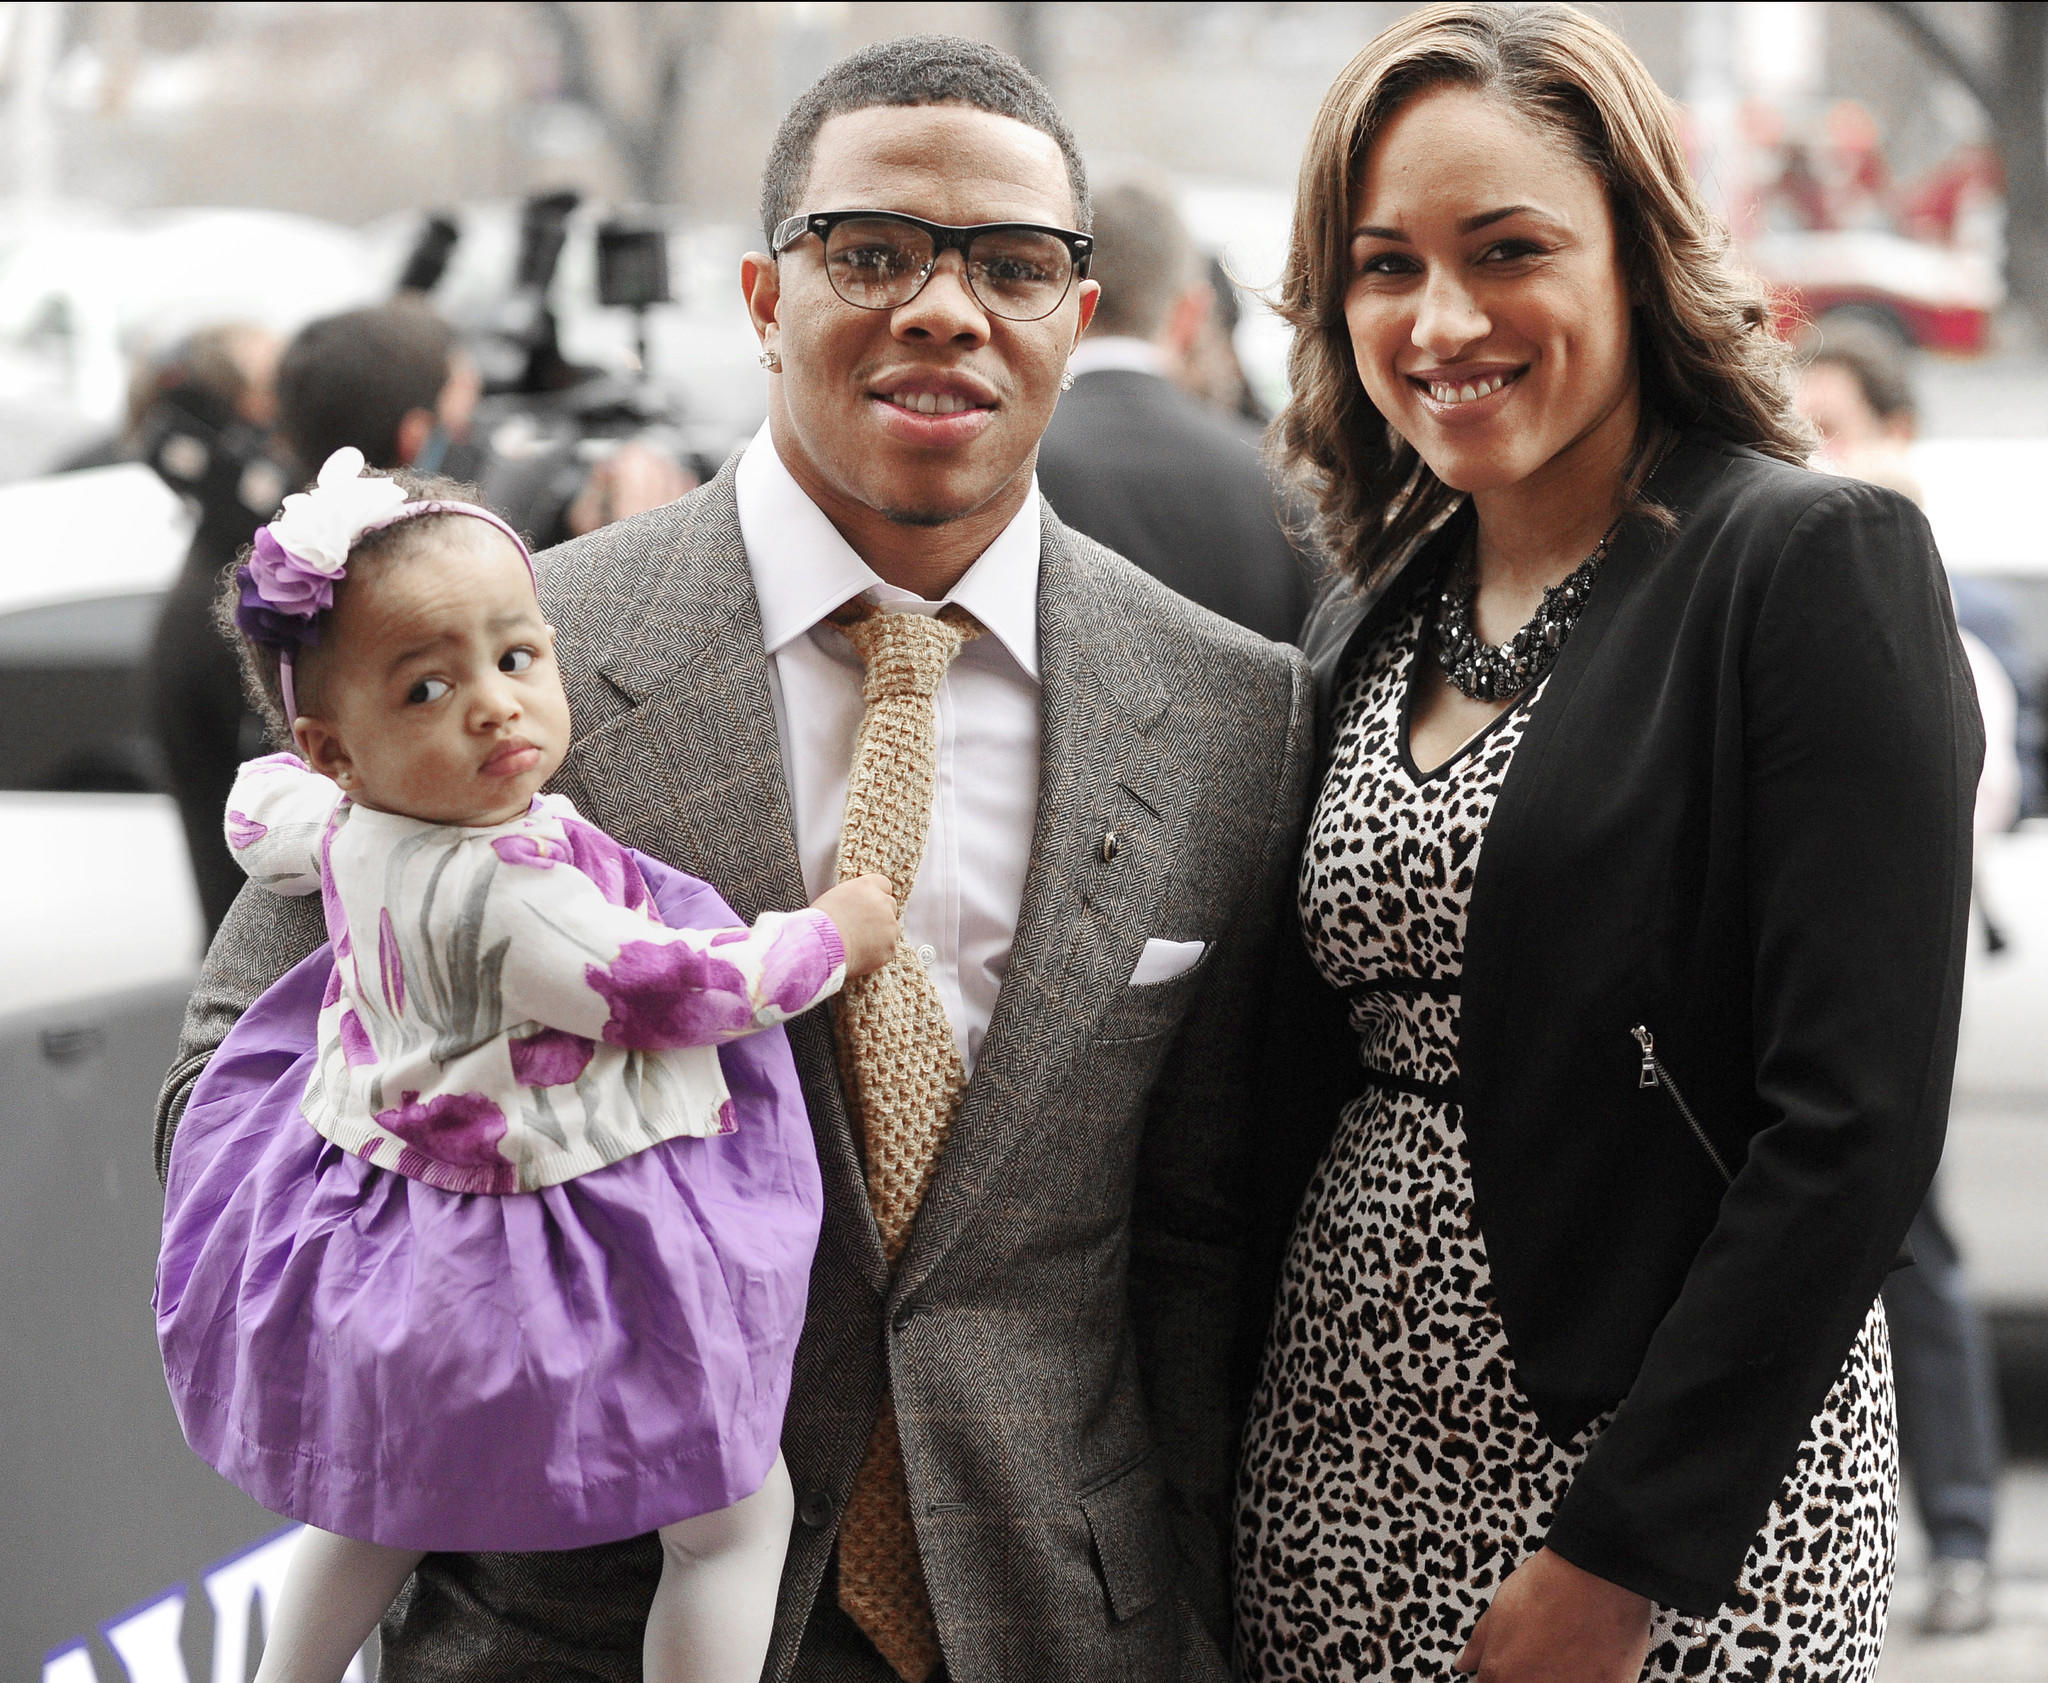 Ray Rice is shown with daughter Rayven and Janay Palmer at The Lyric in this Sun file photo.